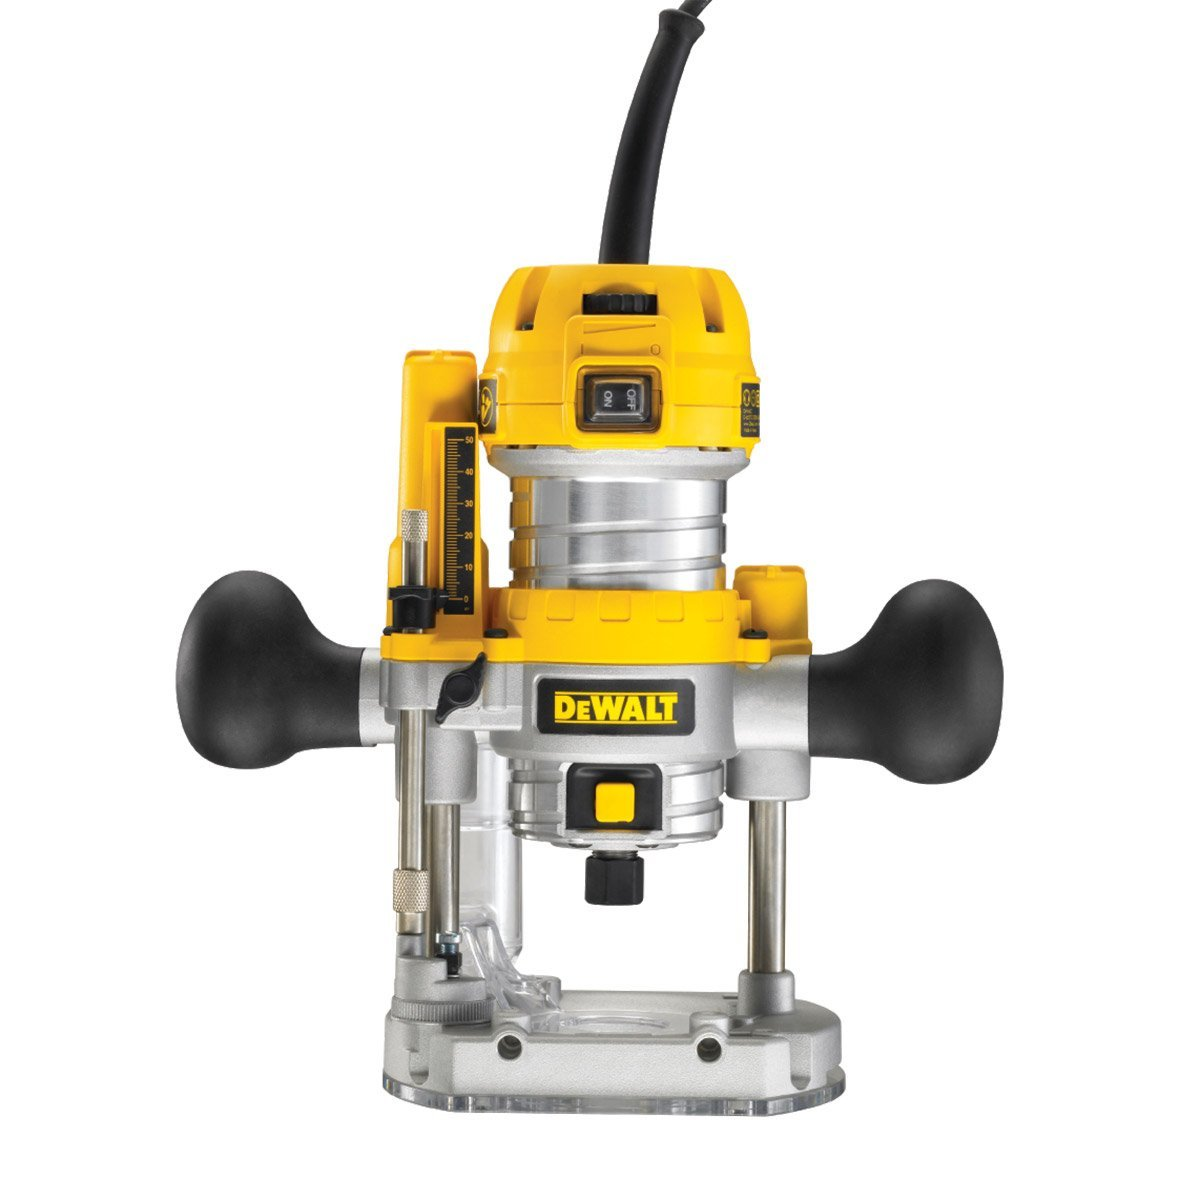 DEWALT D26203 1/4IN / 8MM PLUNGE ROUTER 110V